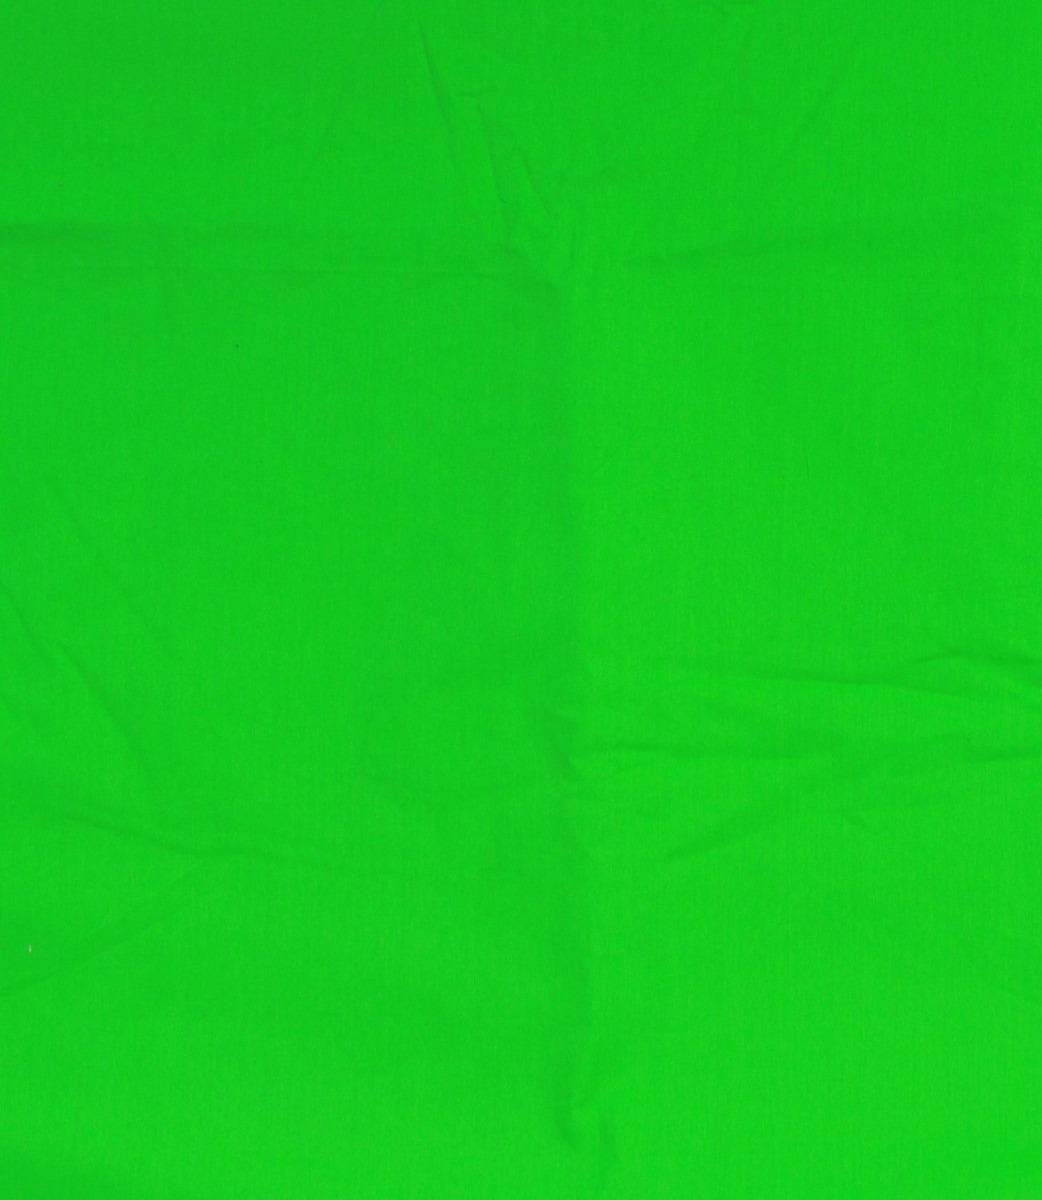 Pantalla Verde Original Chroma Key Greenscreen 1.84 X 1.84